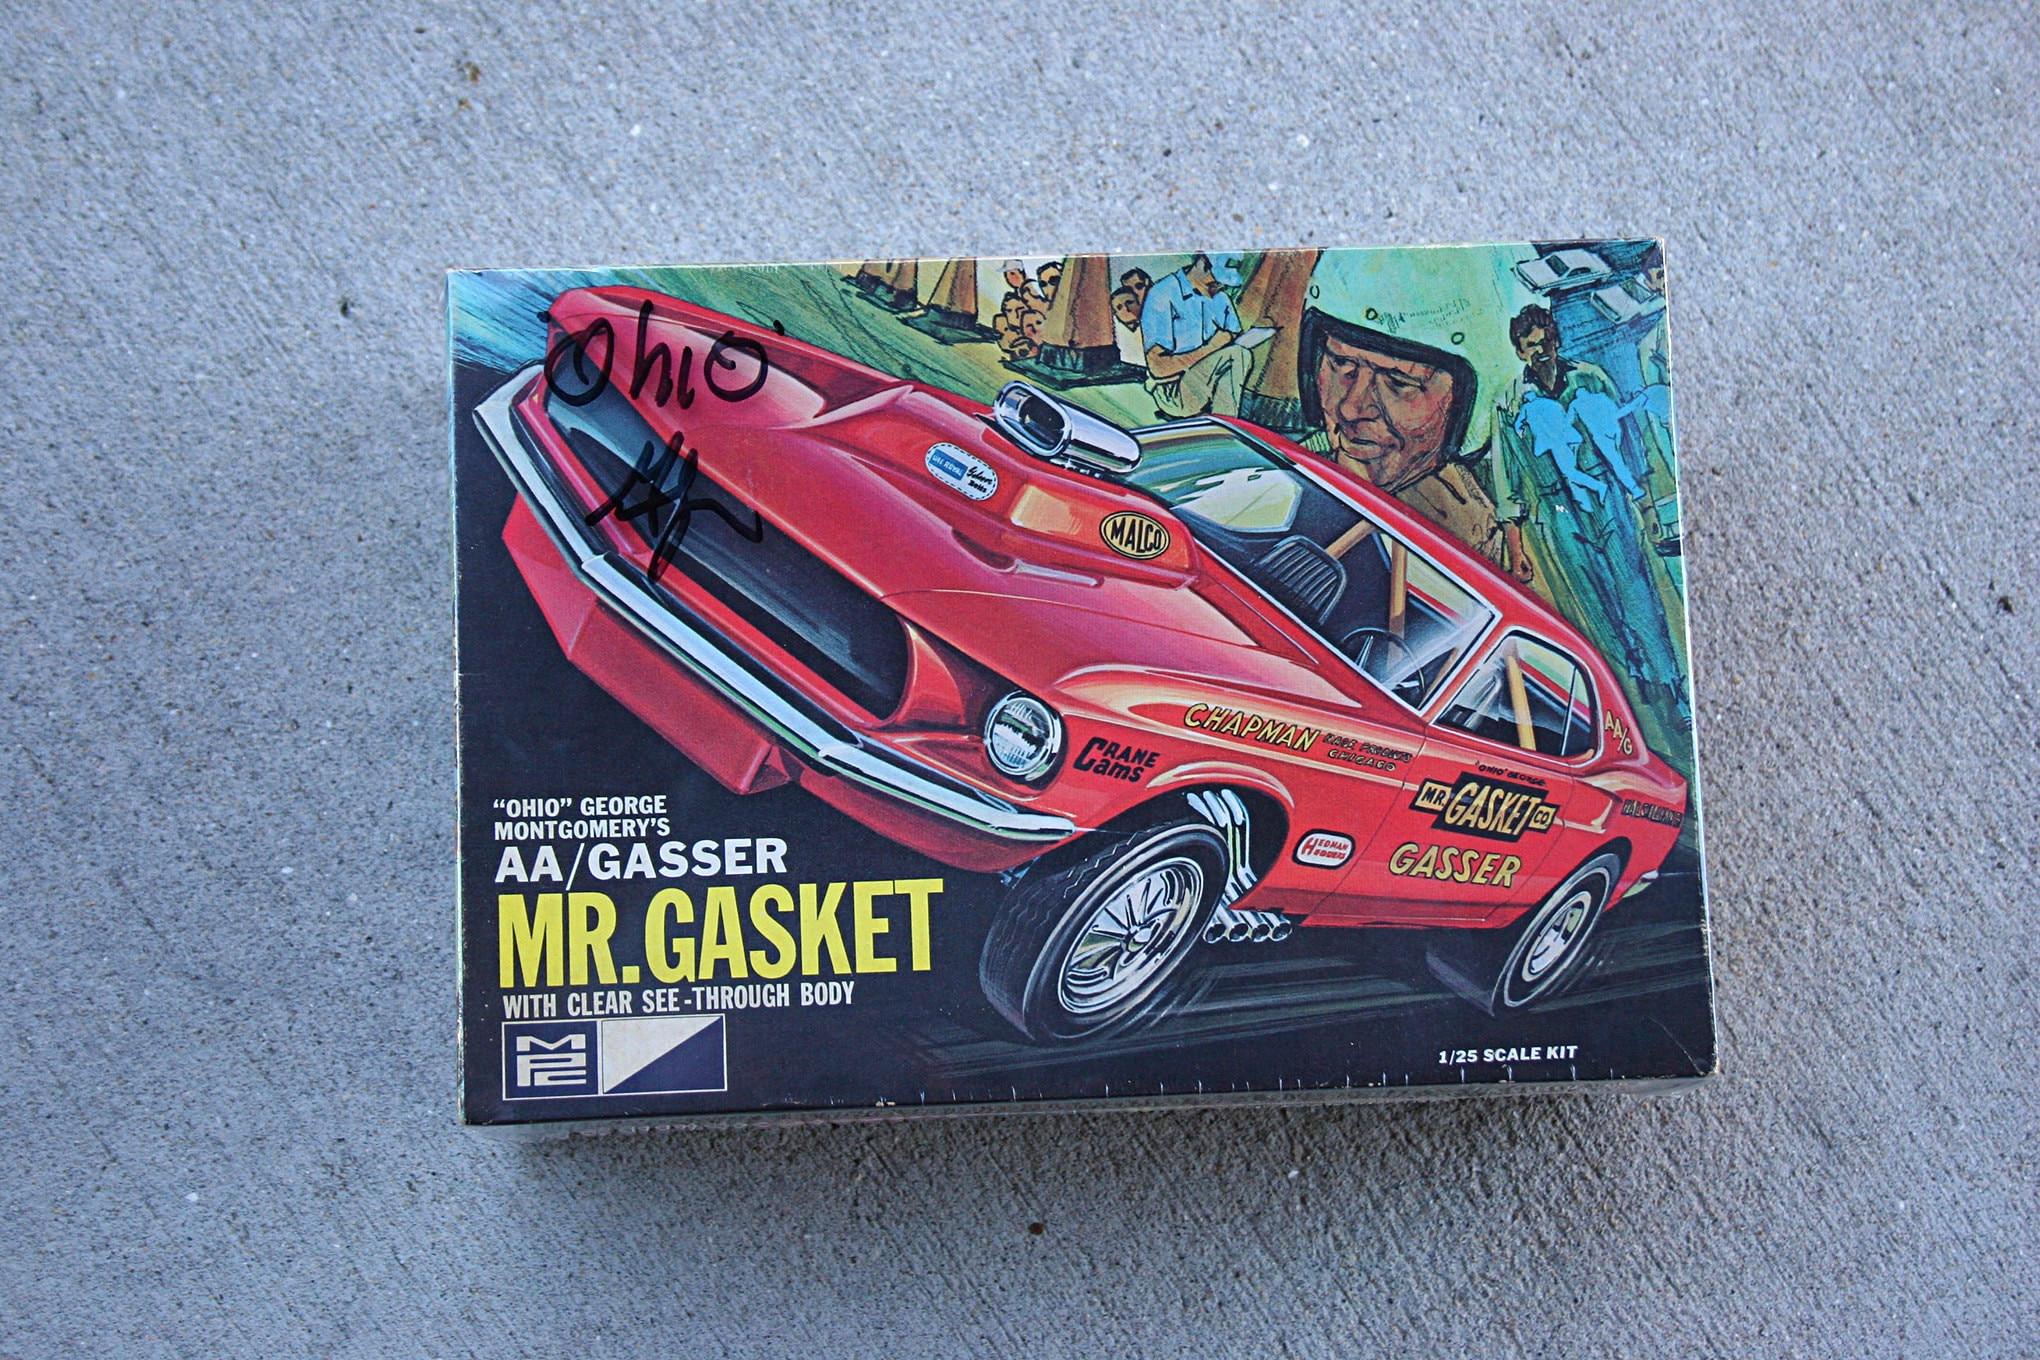 001 Mustang Restoration Technical Questions 1969 Model Kit